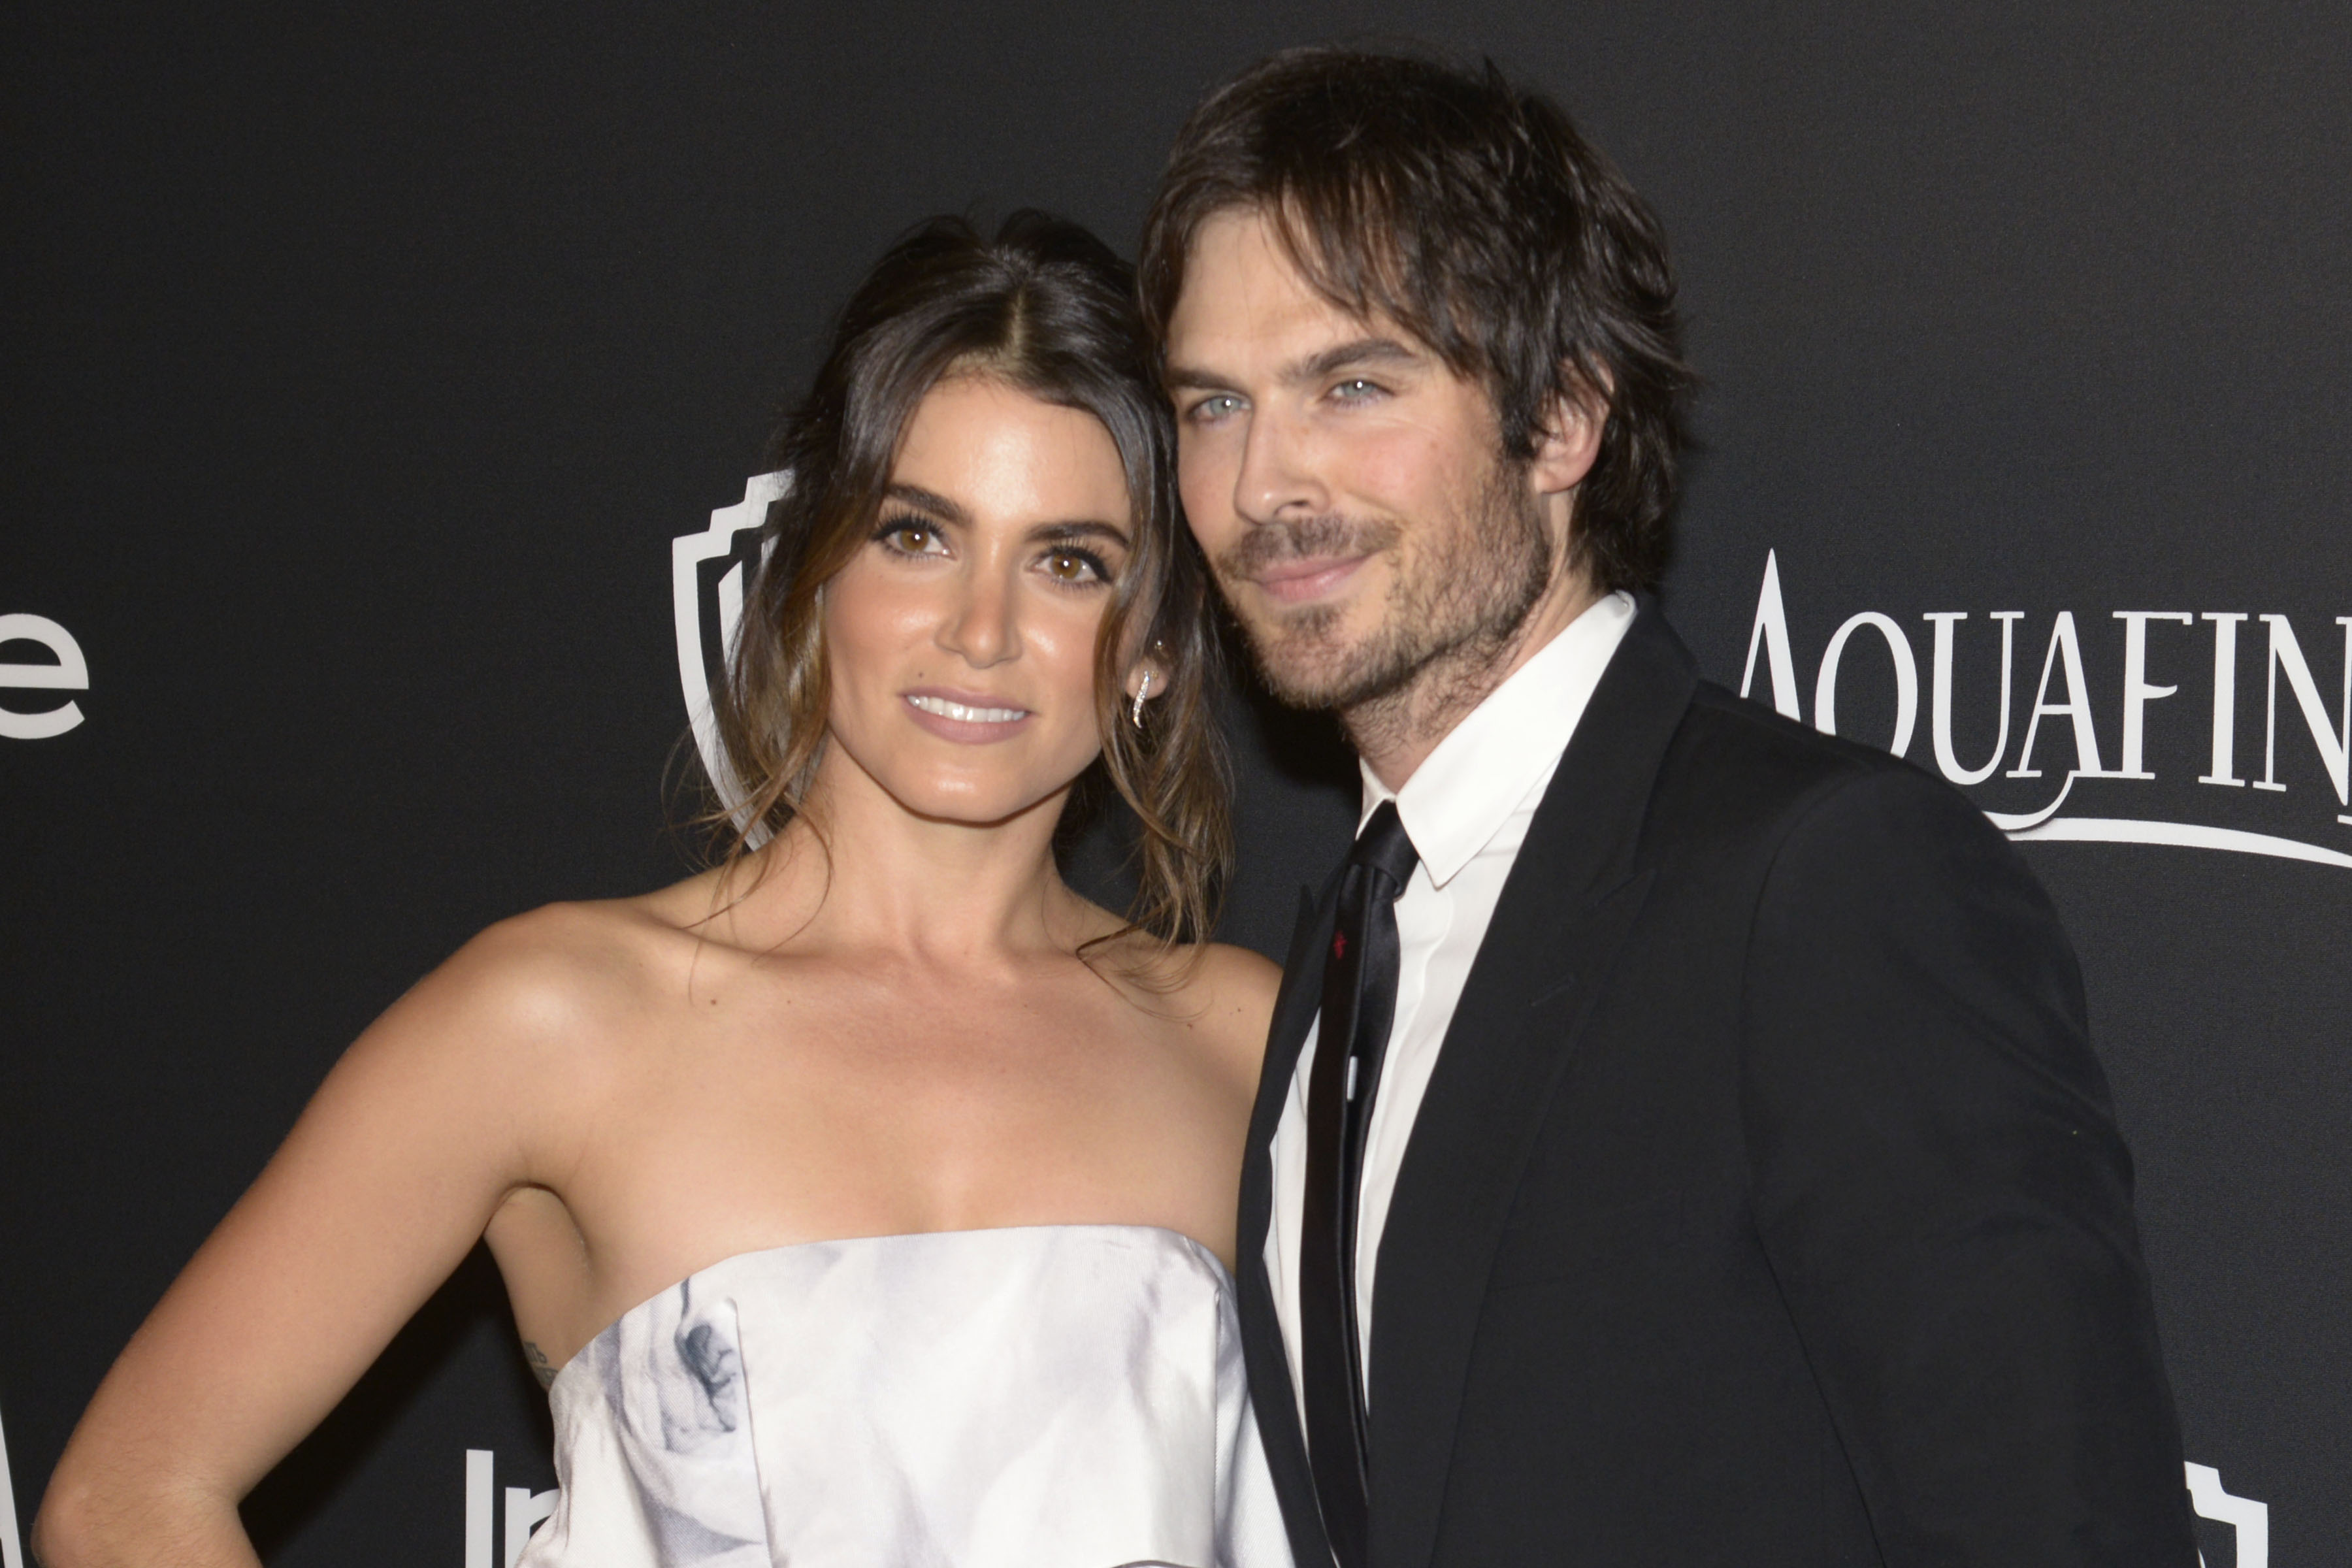 Nikki Reed and Ian Somerhalder at the InStyle and Warner Bros. Golden Globe Awards after party held at the Beverly Hilton in Los Angeles on Jan. 11, 2015